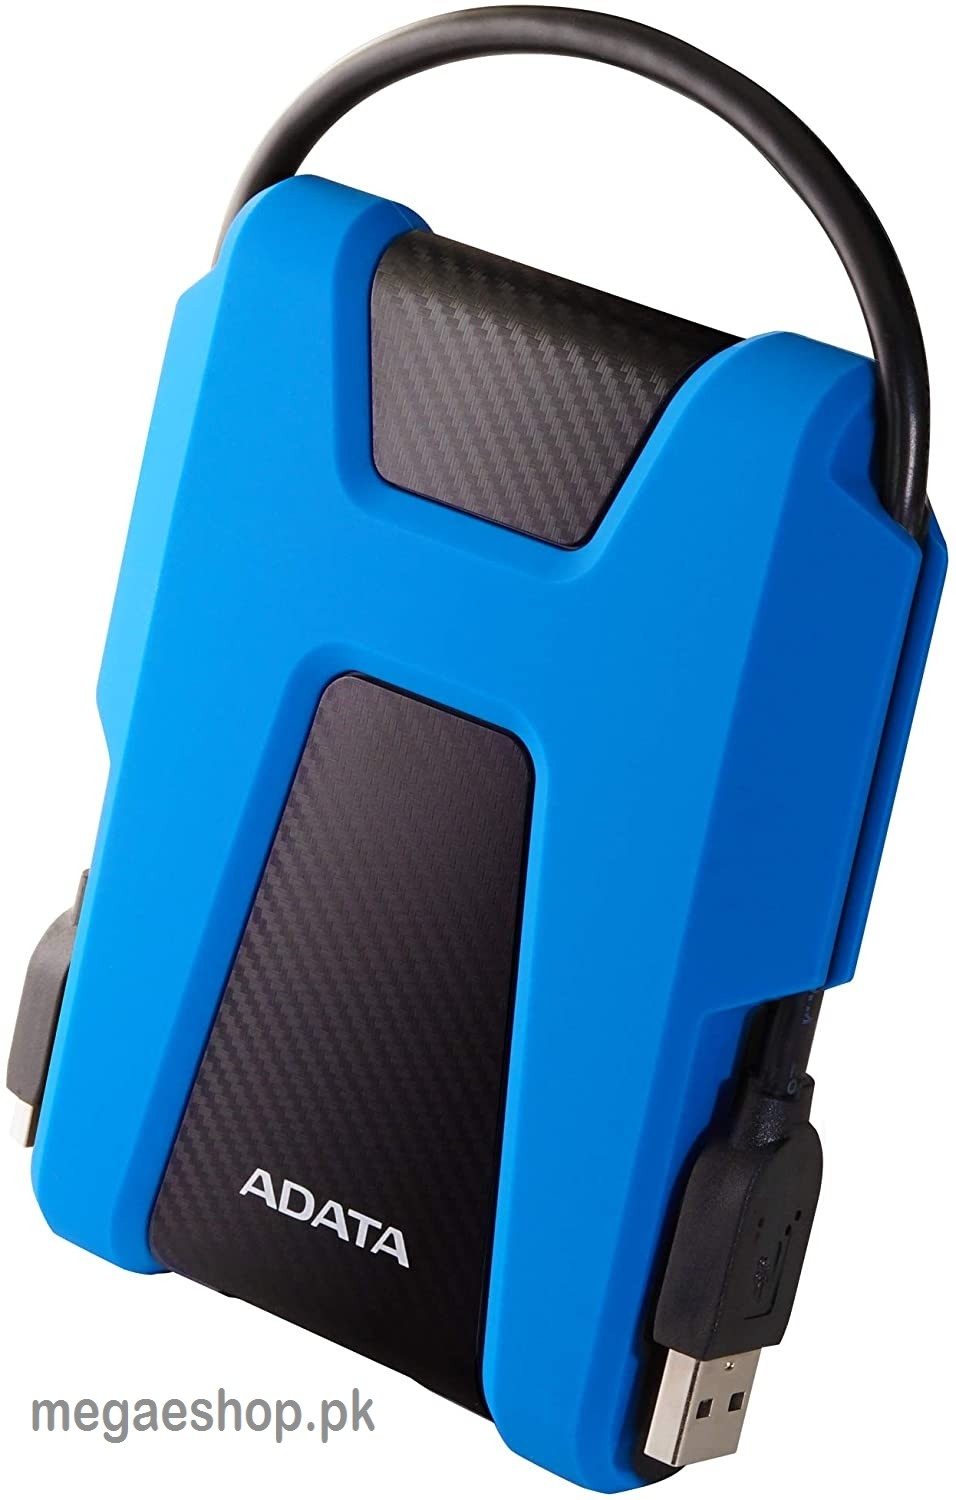 ADATA HD680 1TB Military-Grade Shock-Proof External Portable Hard Drive Blue (AHD680-1TU31-CBL)